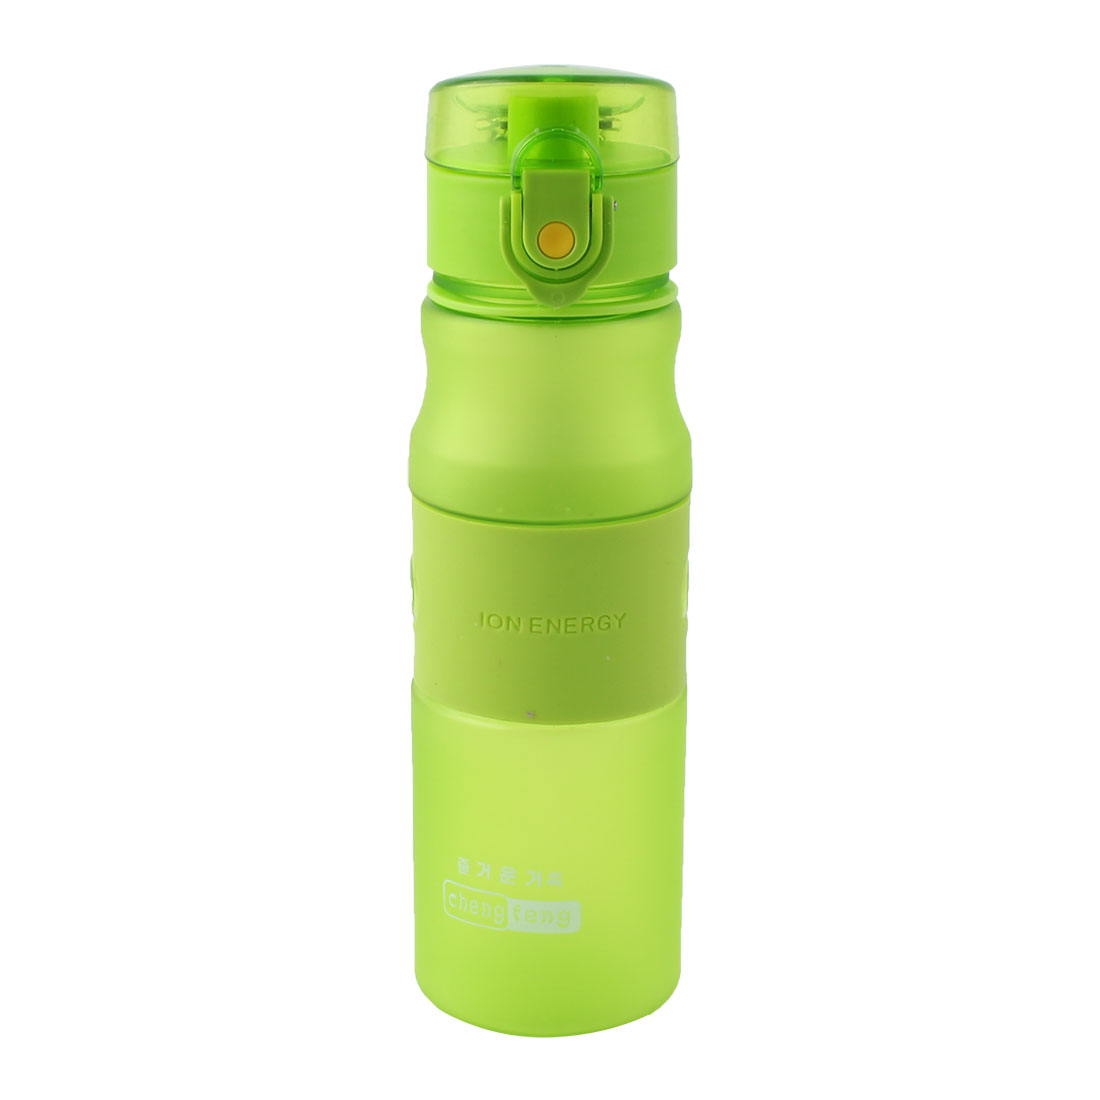 Travel Plastic Frosted Tea Juice Cup Handy Sports Drinking Straw Water Bottle Green 550ml